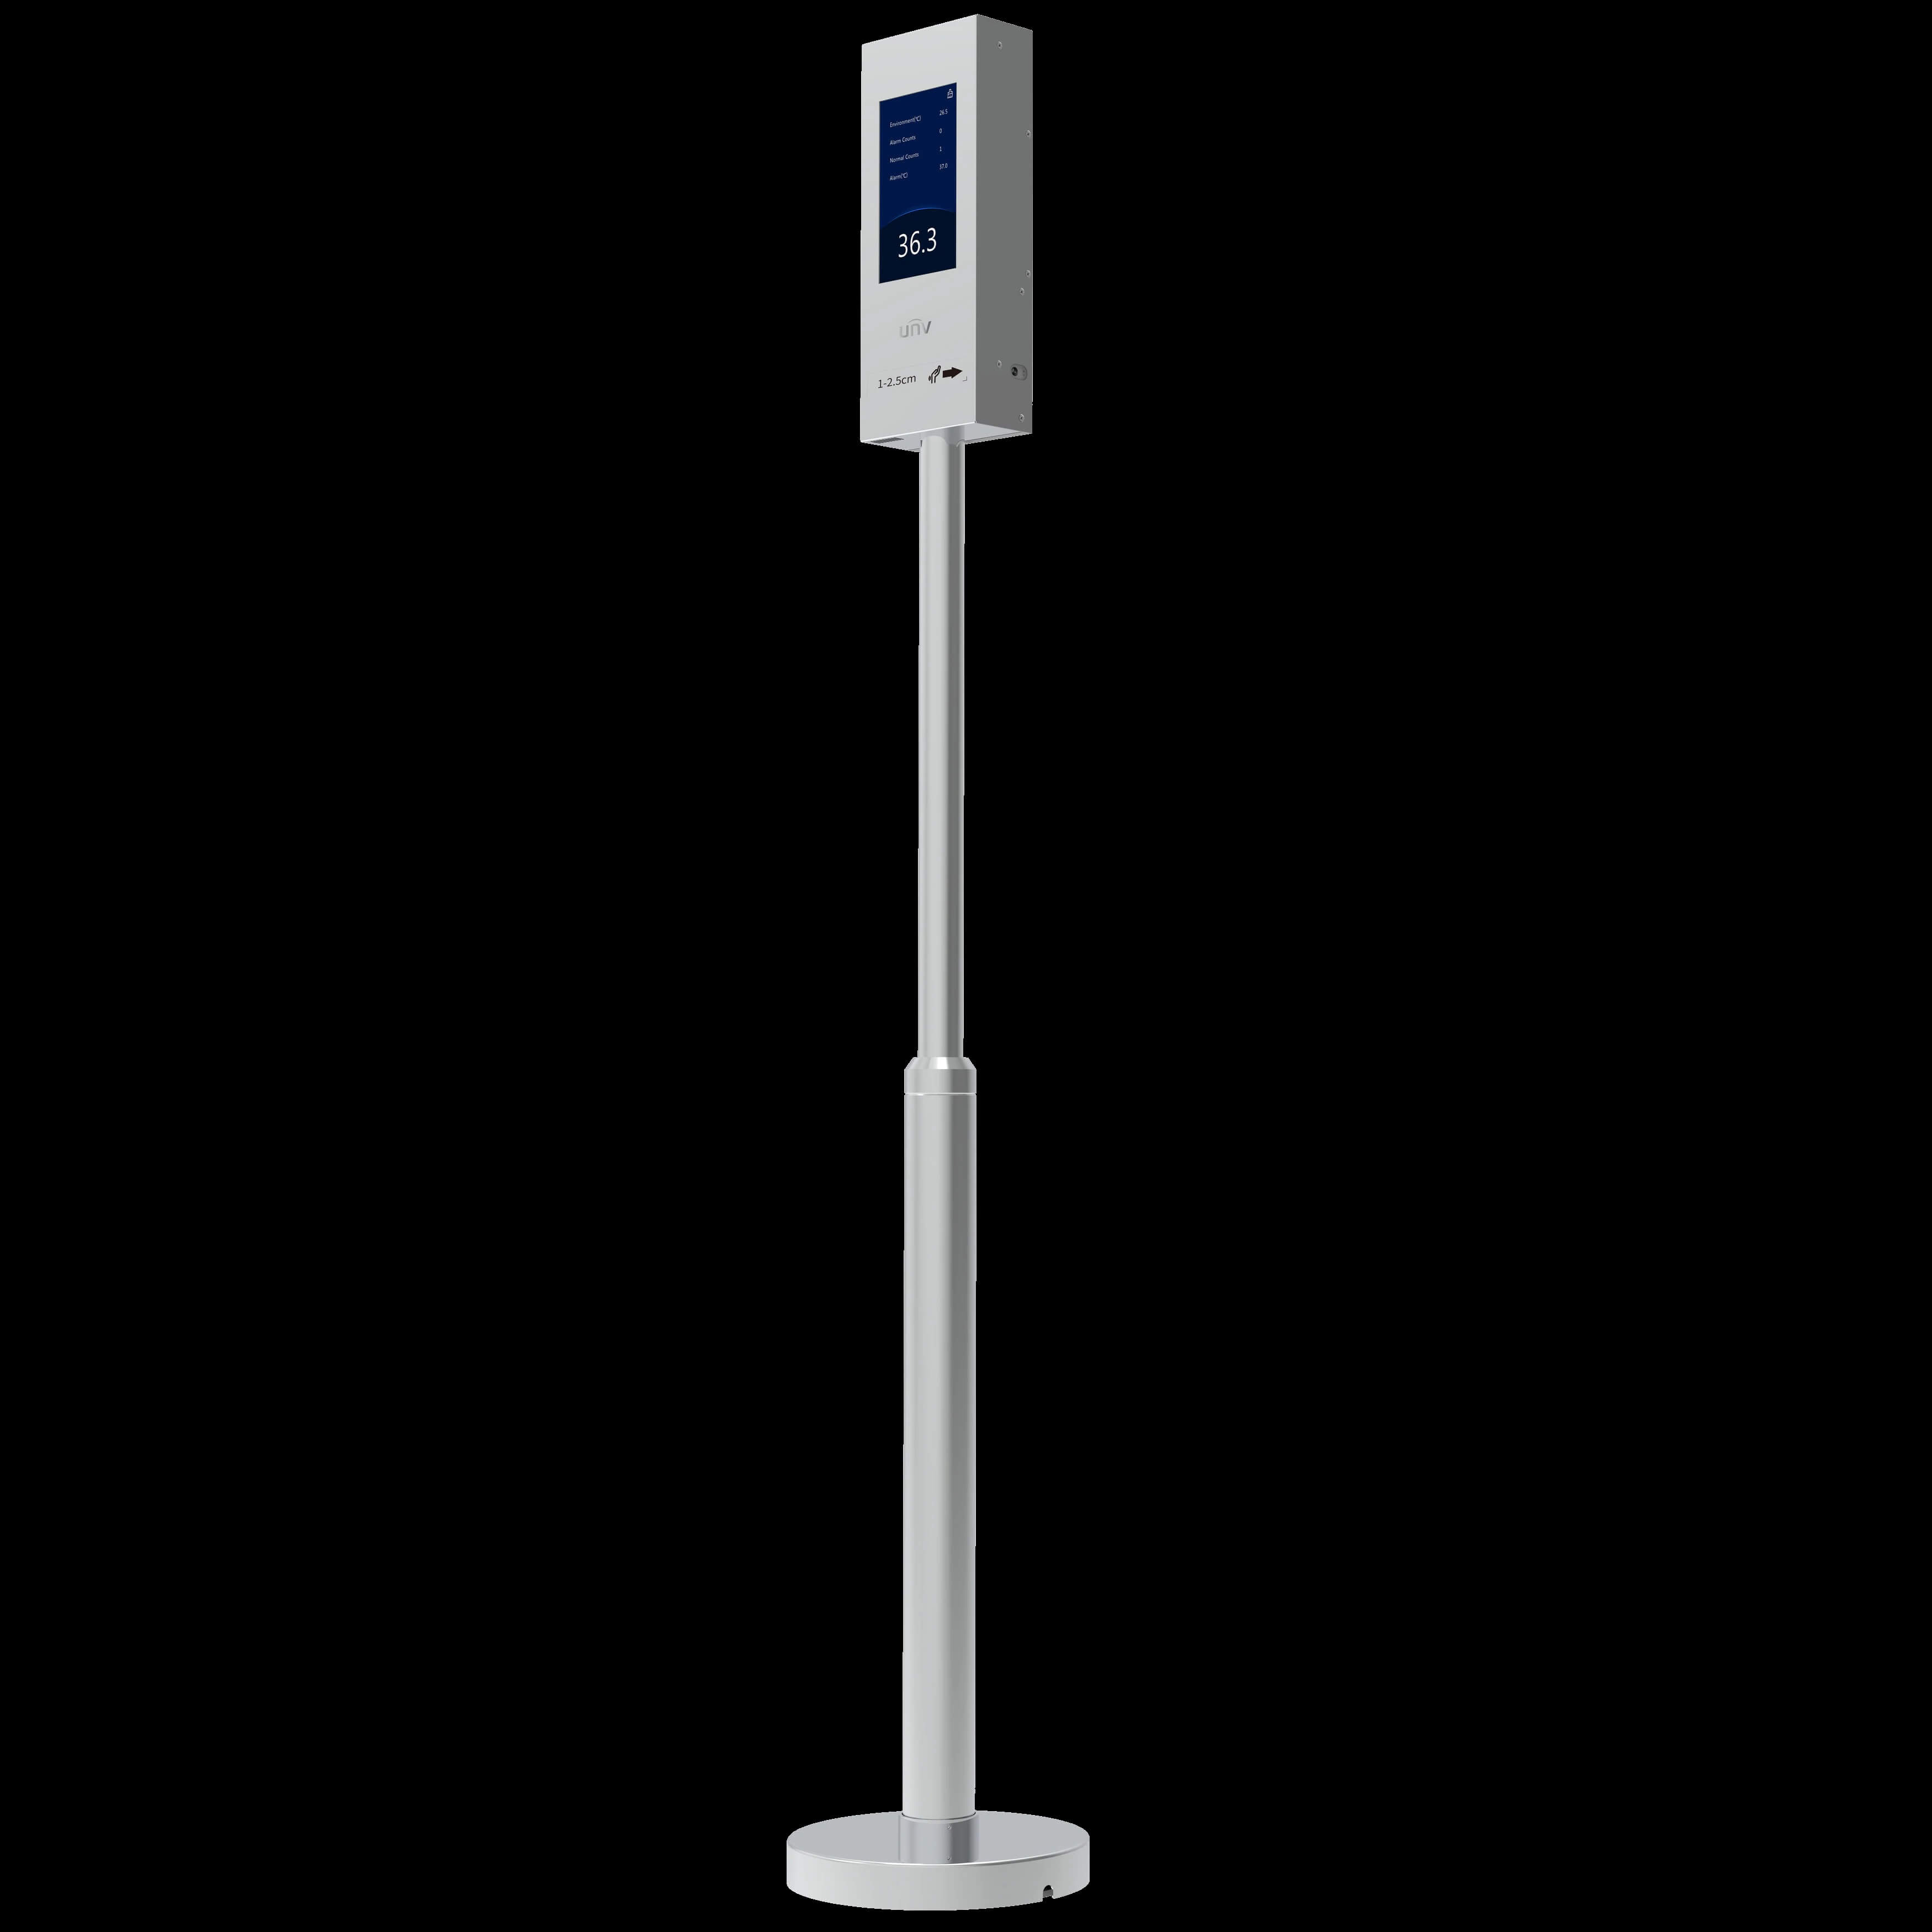 Commercial Standing No Contact Temperature Measuring Device